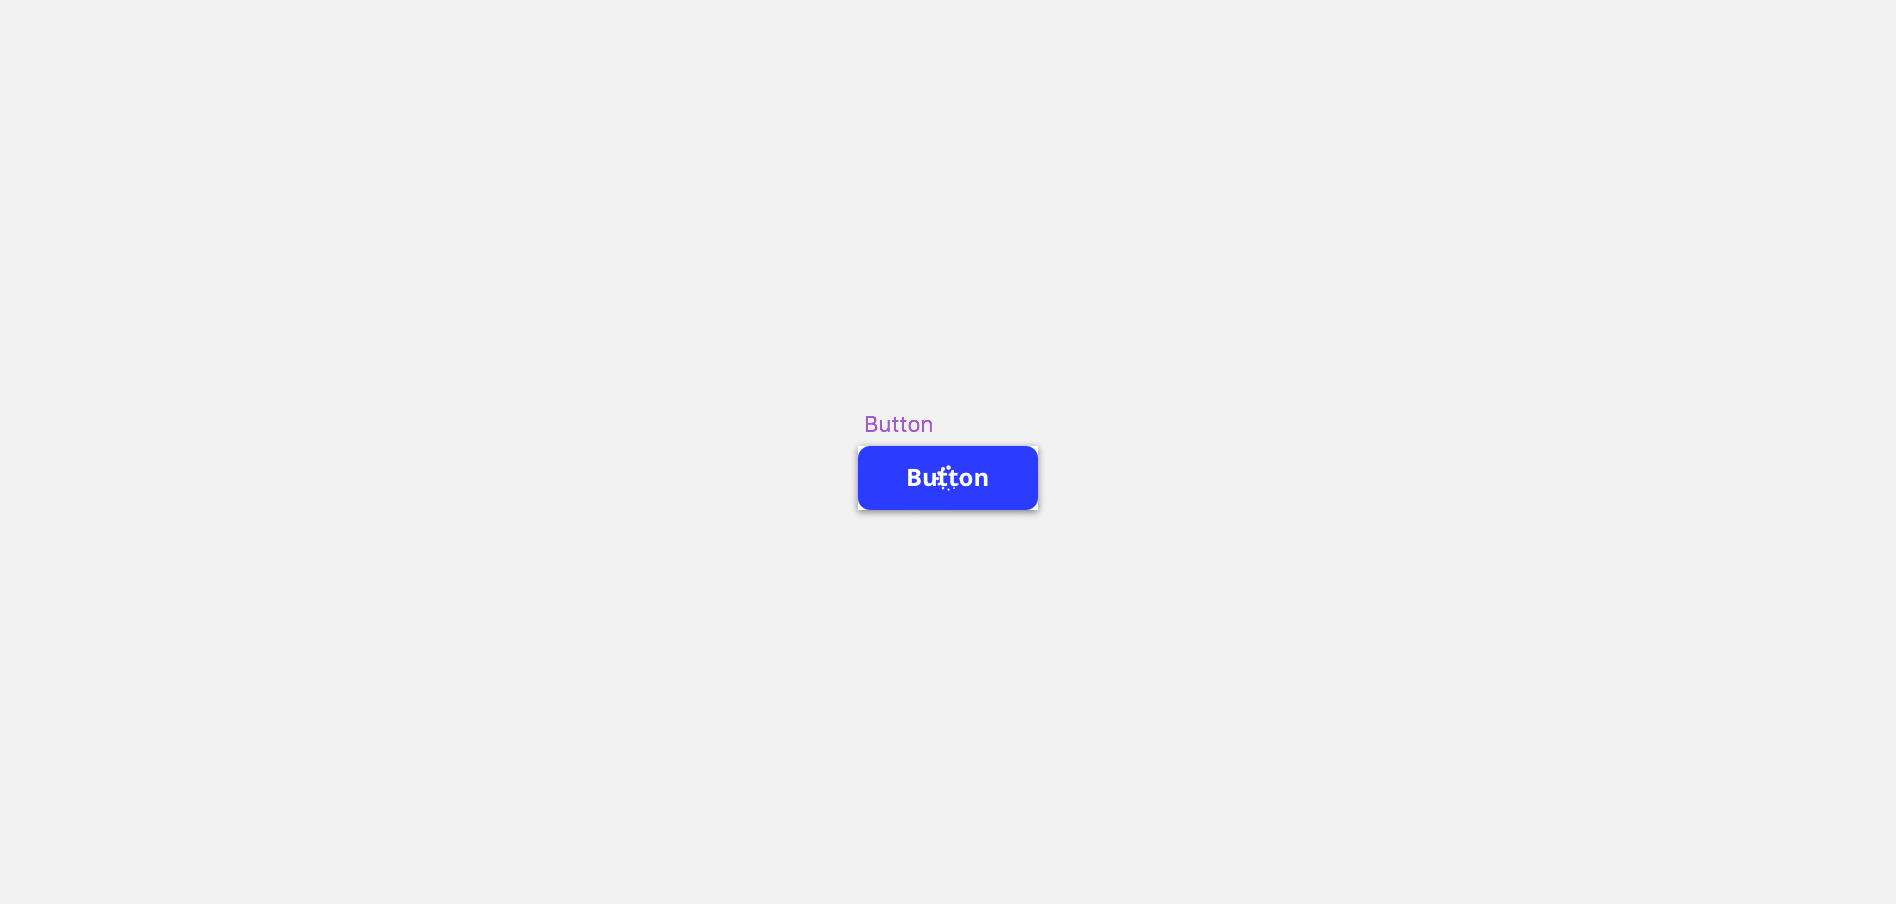 A Better Way To Make Buttons In Sketch Ux Power Tools Medium Just Like Reading Road Map You Need Know What These Symbols This Reminds Me Of That Sad Scene From Cast Away Where Tom Hanks Is All Alone On His Raft Rip Wilson